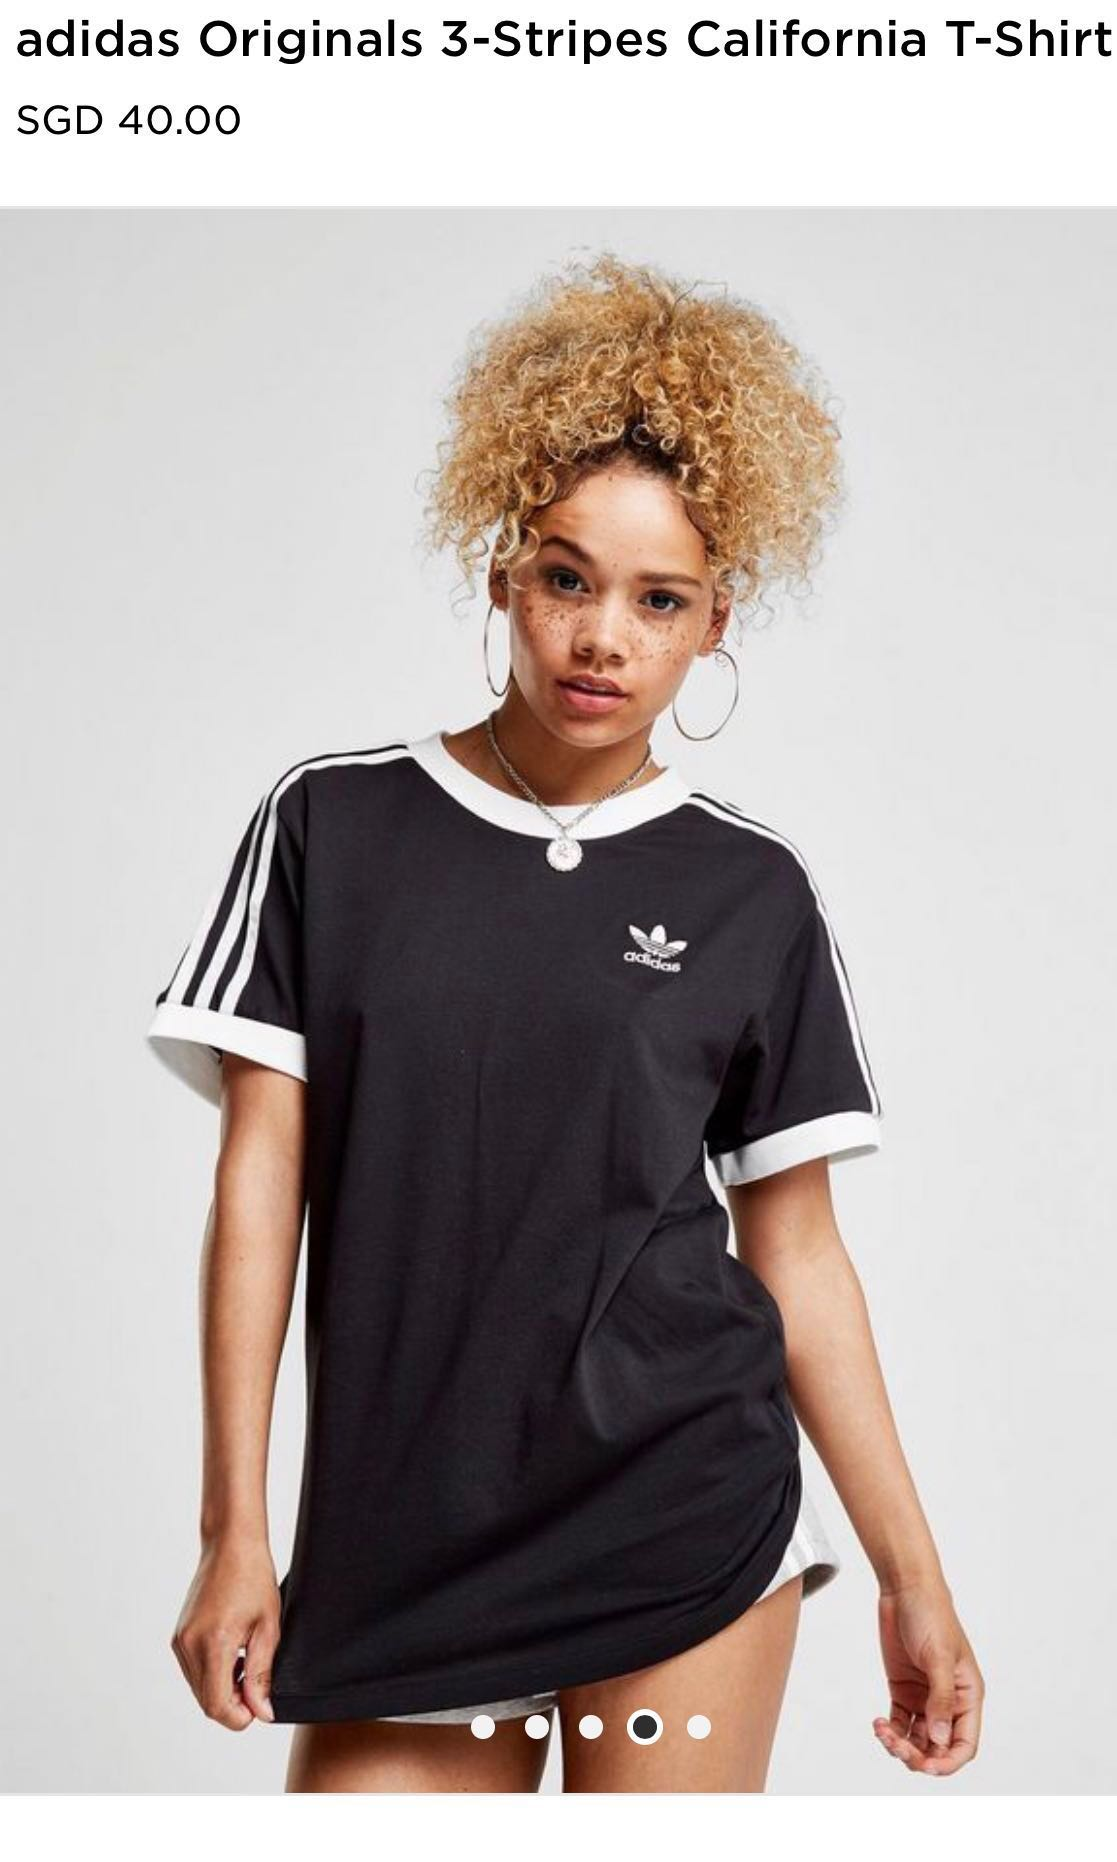 size 40 d0b9c 120aa Adidas Originals 3-Stripes California T-Shirt, Women s Fashion, Clothes,  Tops on Carousell